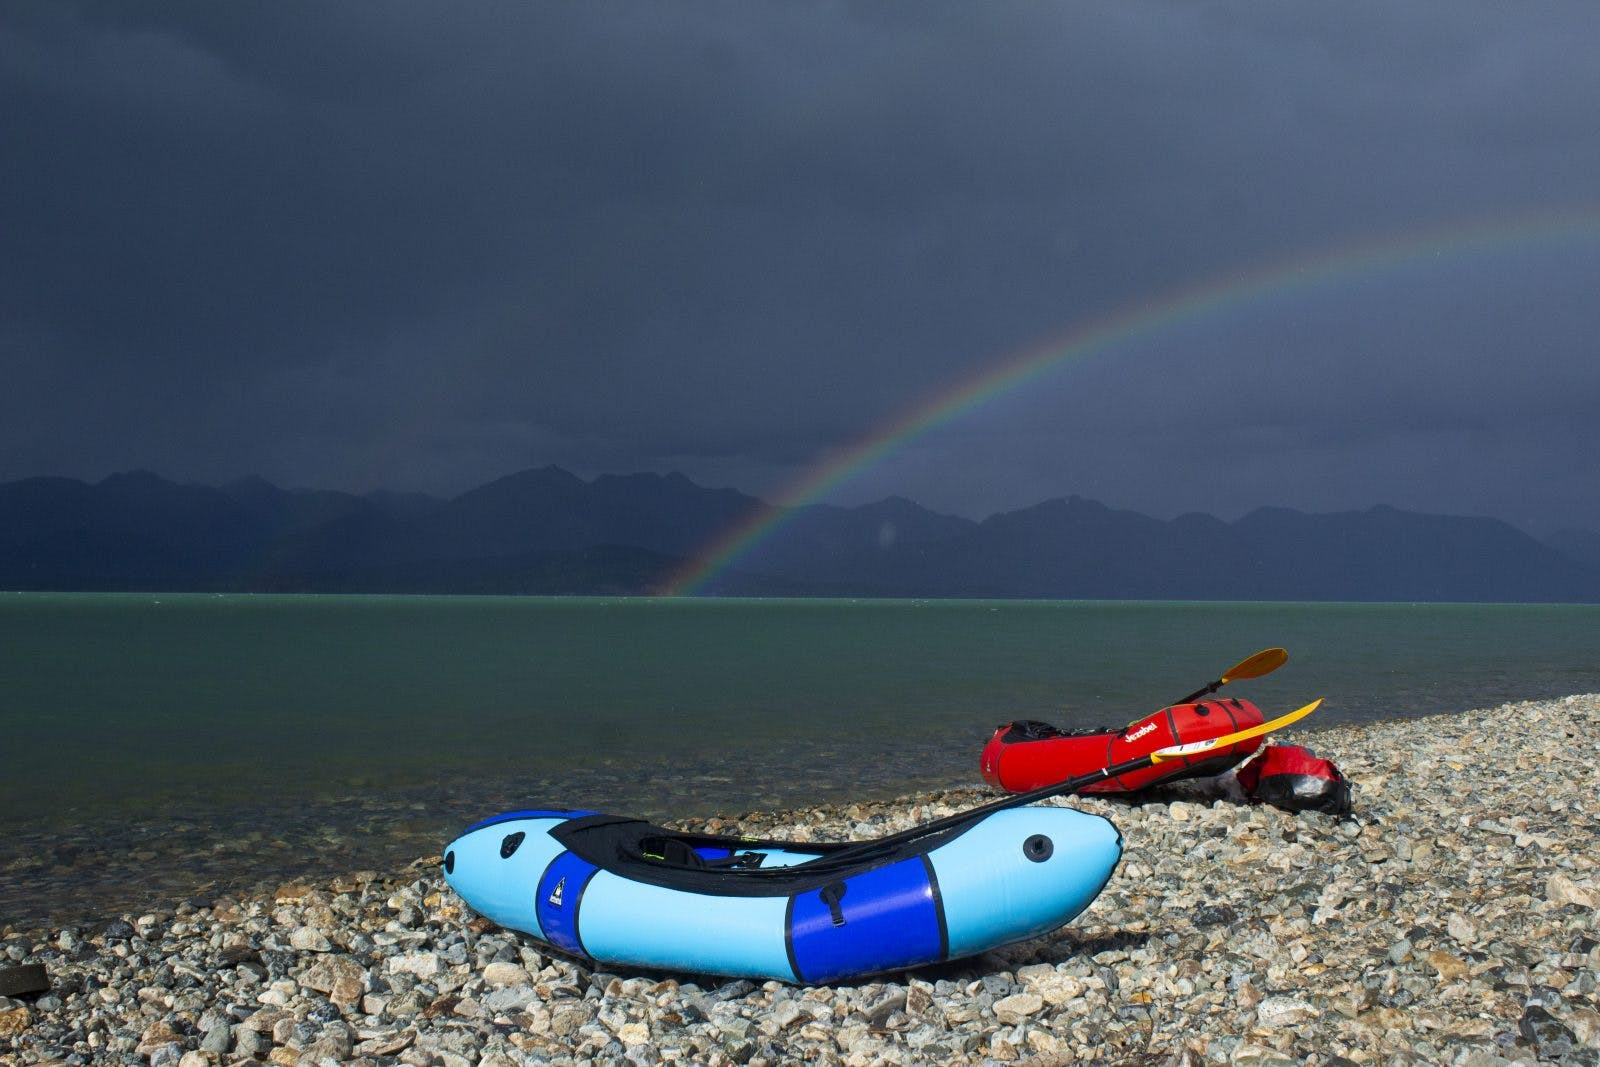 My packraft (Louise) and Paul's packraft (Jezebel) soaking up the view over Lake Clark. Photo by: Sam Carter